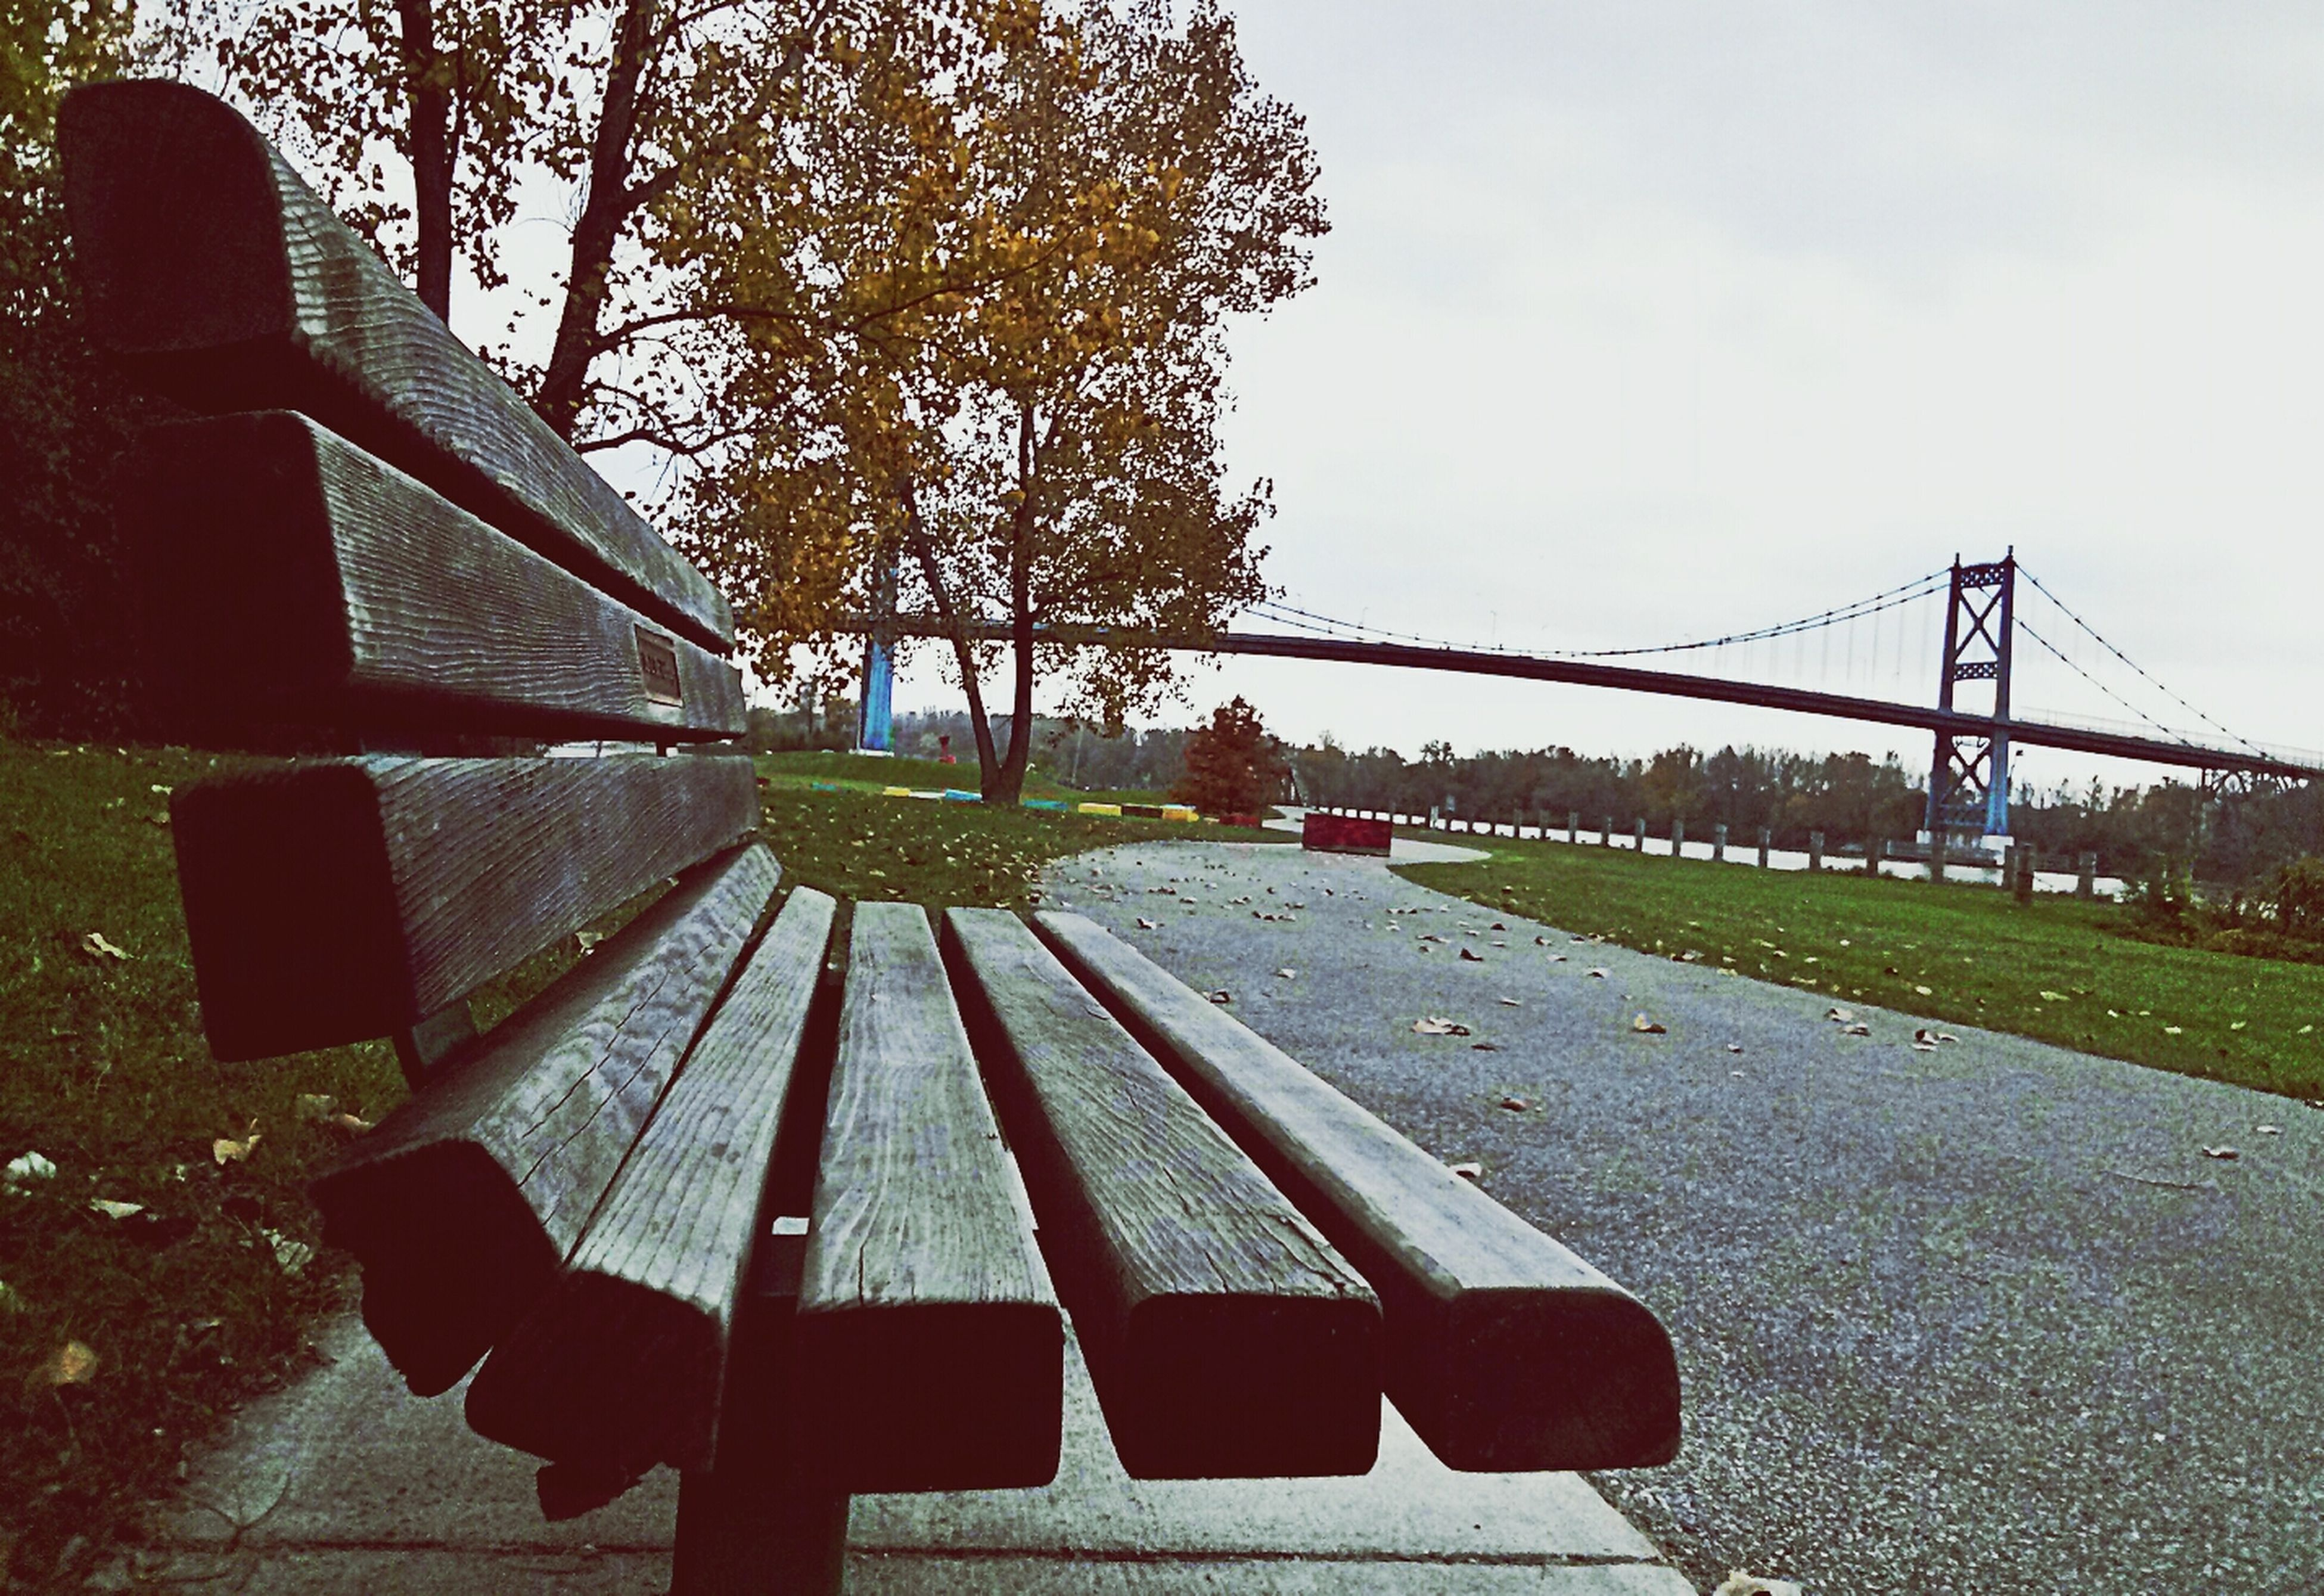 tree, lifestyles, leisure activity, railing, road, day, outdoors, sky, connection, park - man made space, the way forward, built structure, transportation, street, full length, bridge - man made structure, grass, playground